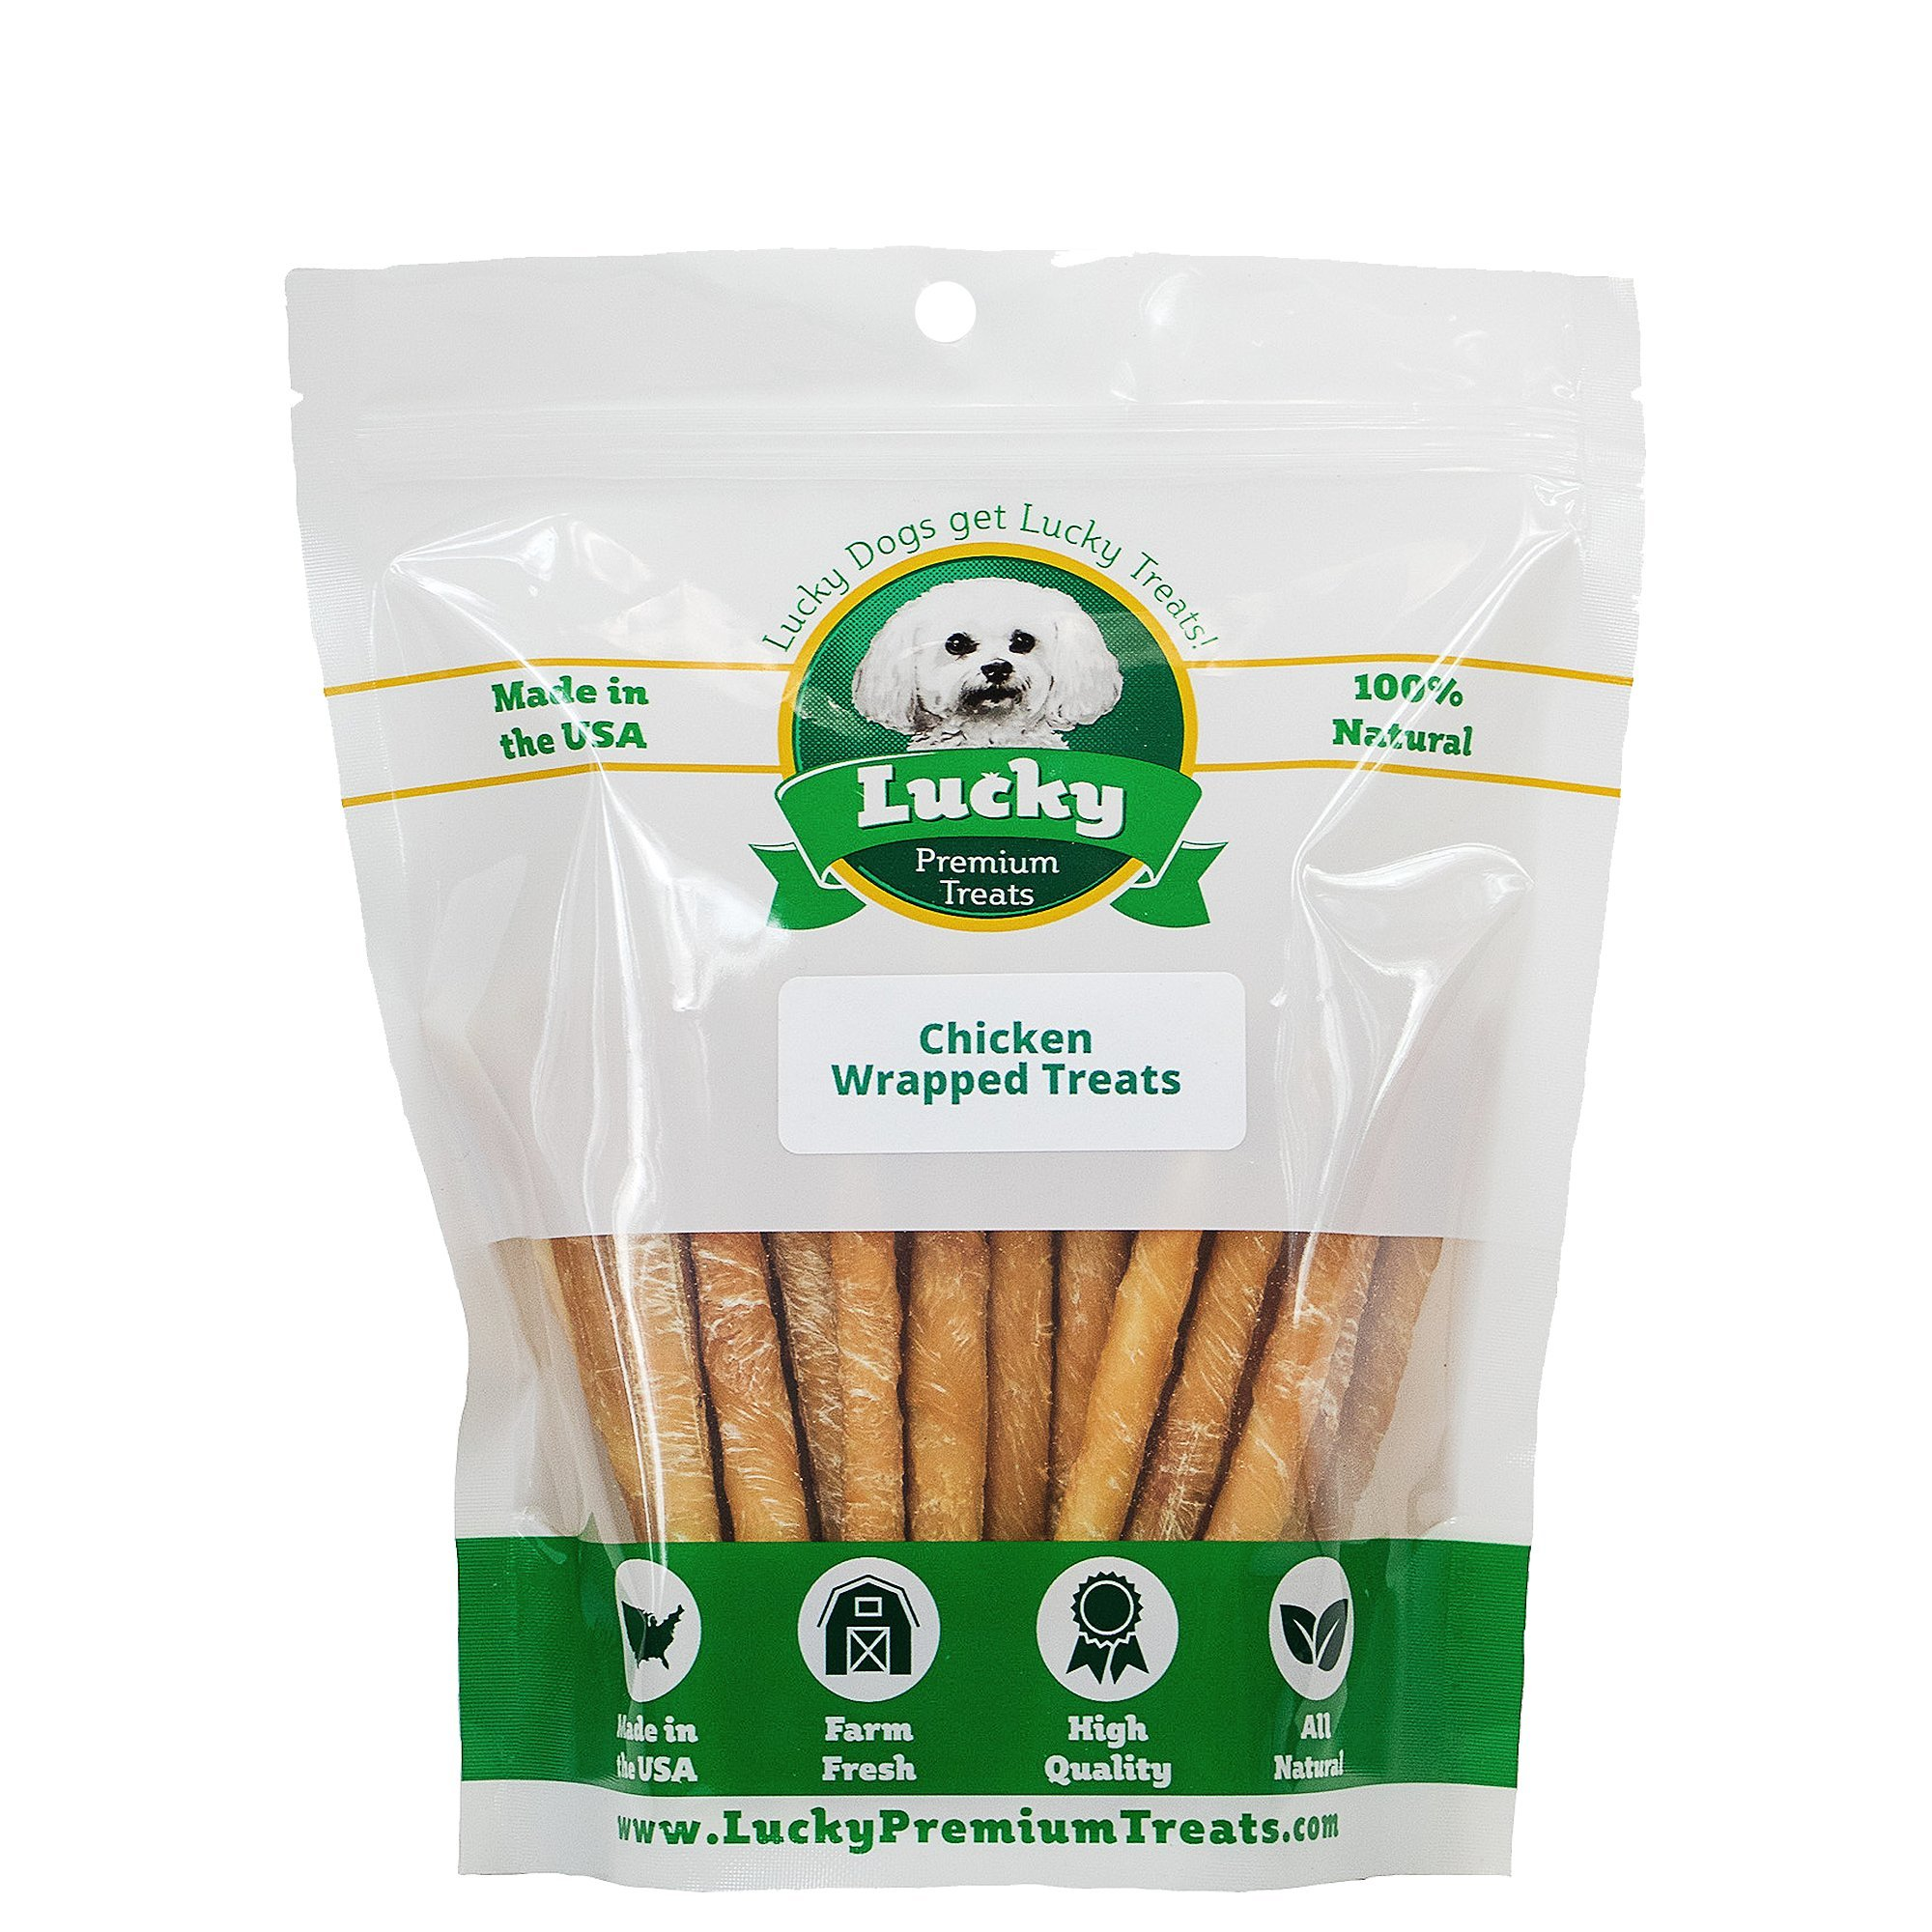 Lucky Premium Treats Healthy Chicken Wrapped Rawhide Dog Treats, All Natural Gluten Free Dog Treats for Small Dogs, 100 Chews by Lucky Premium Treats